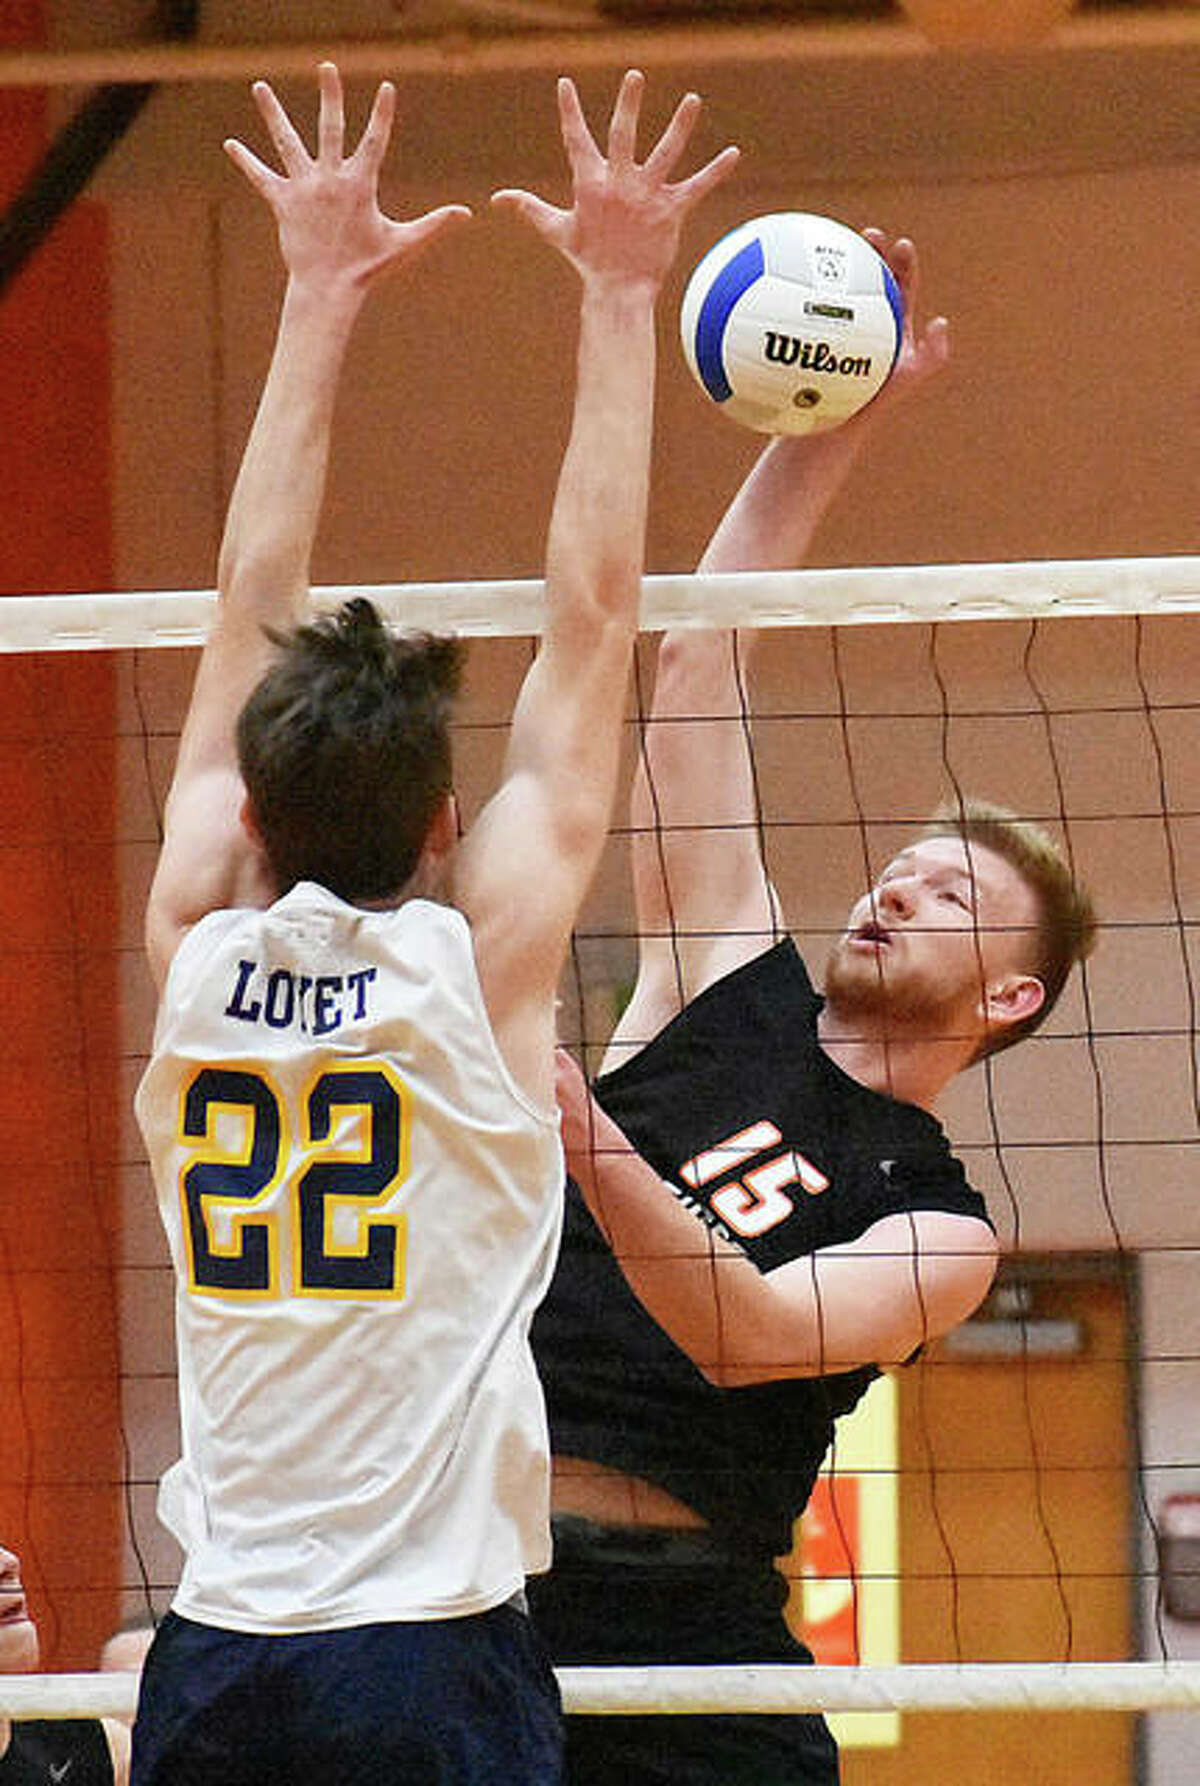 The Edwardsville boys volleyball team in action last season. The Tigers won a share of the Southwestern Conference championship and claimed a regional championship.